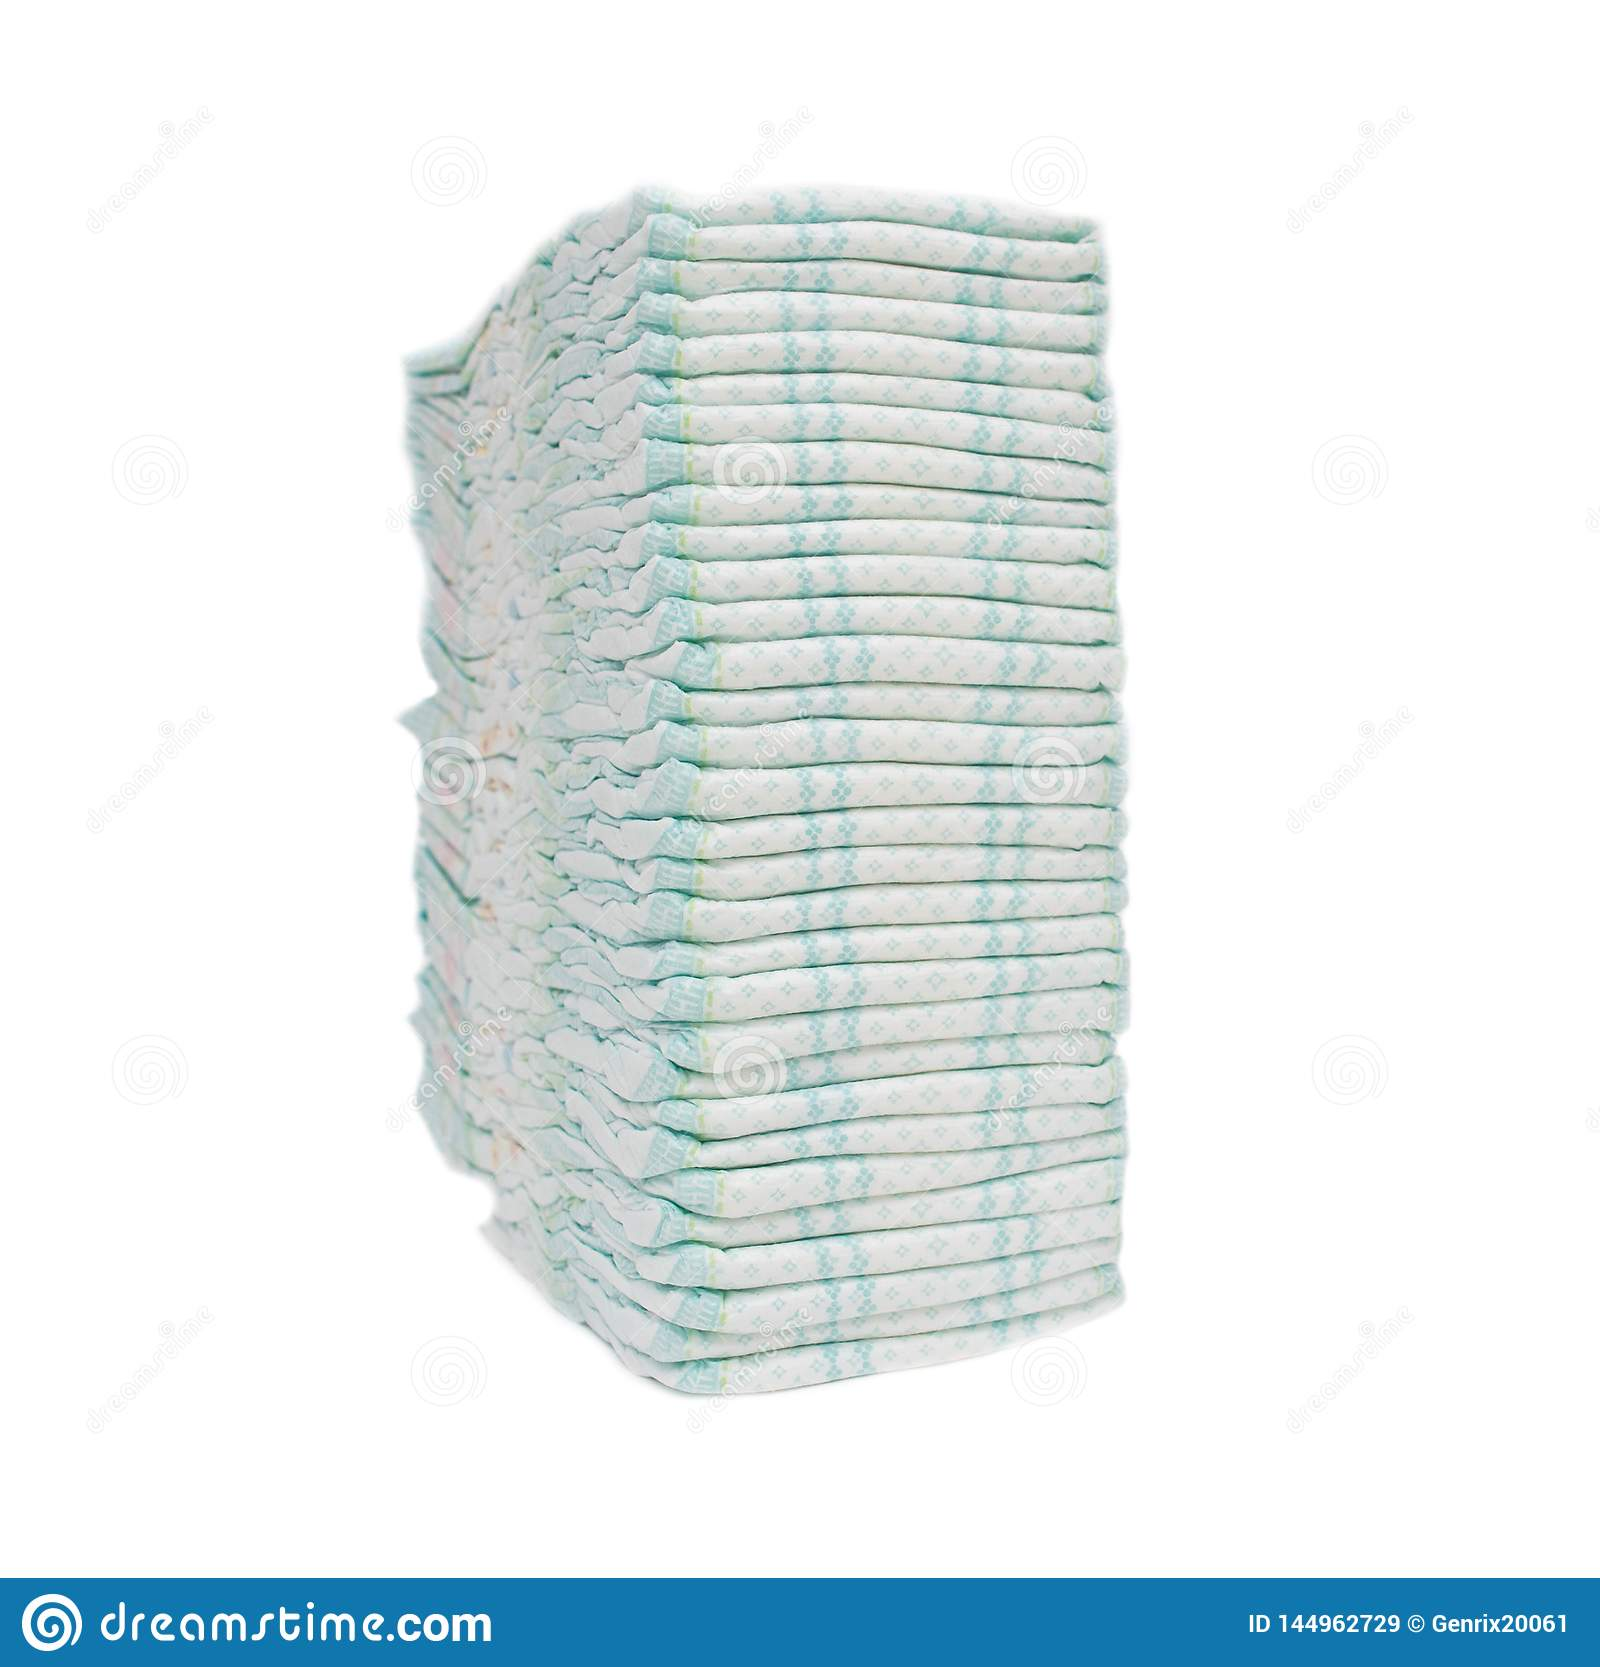 A large stack of baby hygienic diapers that protect against leakage, cleanliness and absorption, hypoallergenicity, isolate, white